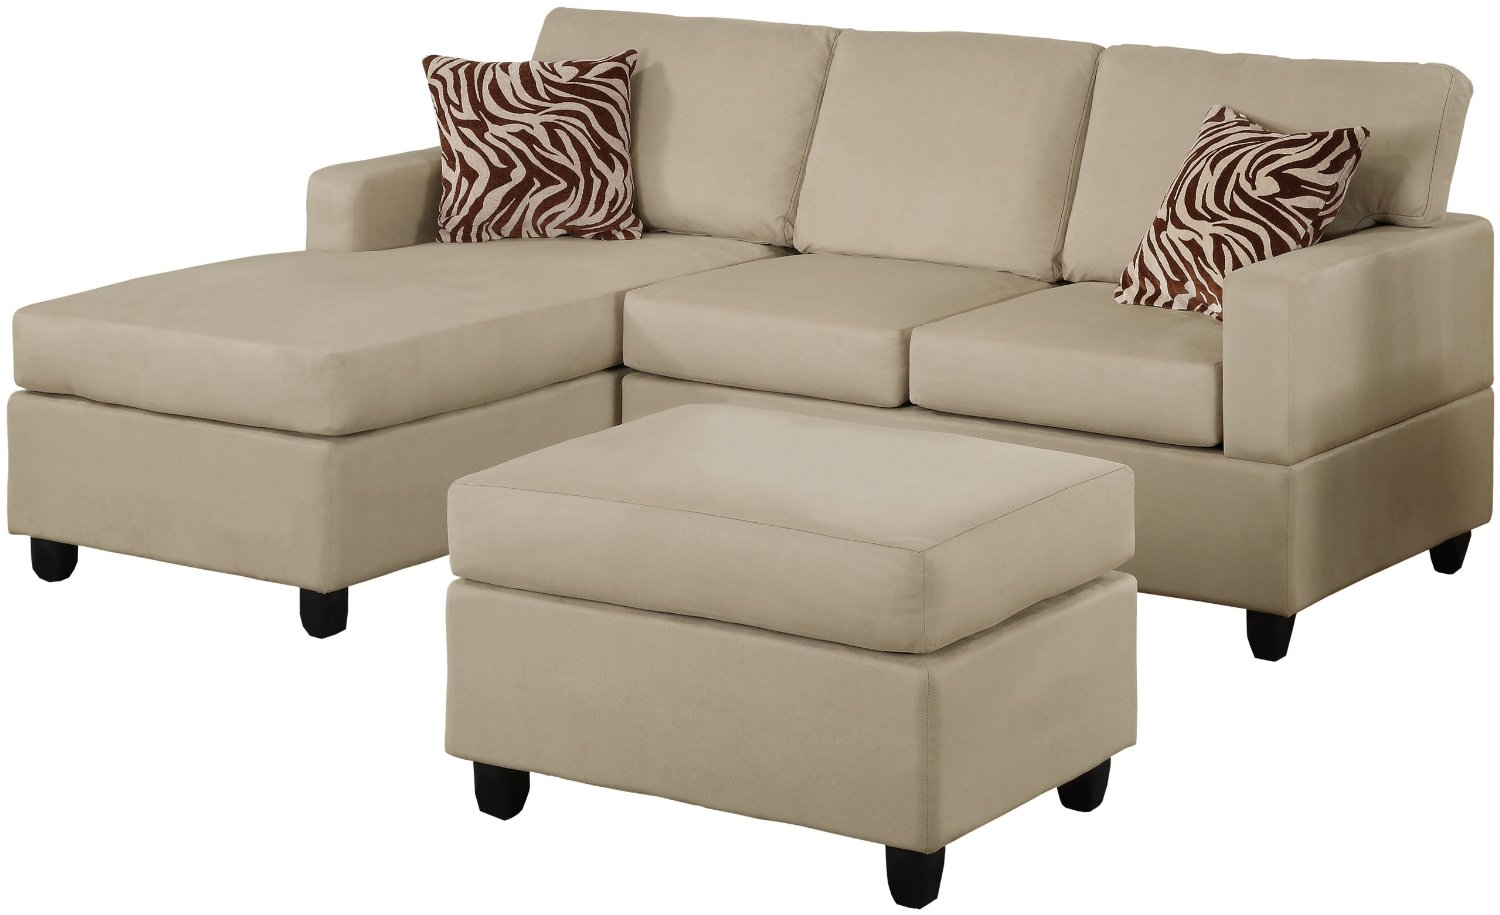 cheapest sofa deals uk scs sophie cute couches available online | couch & ...